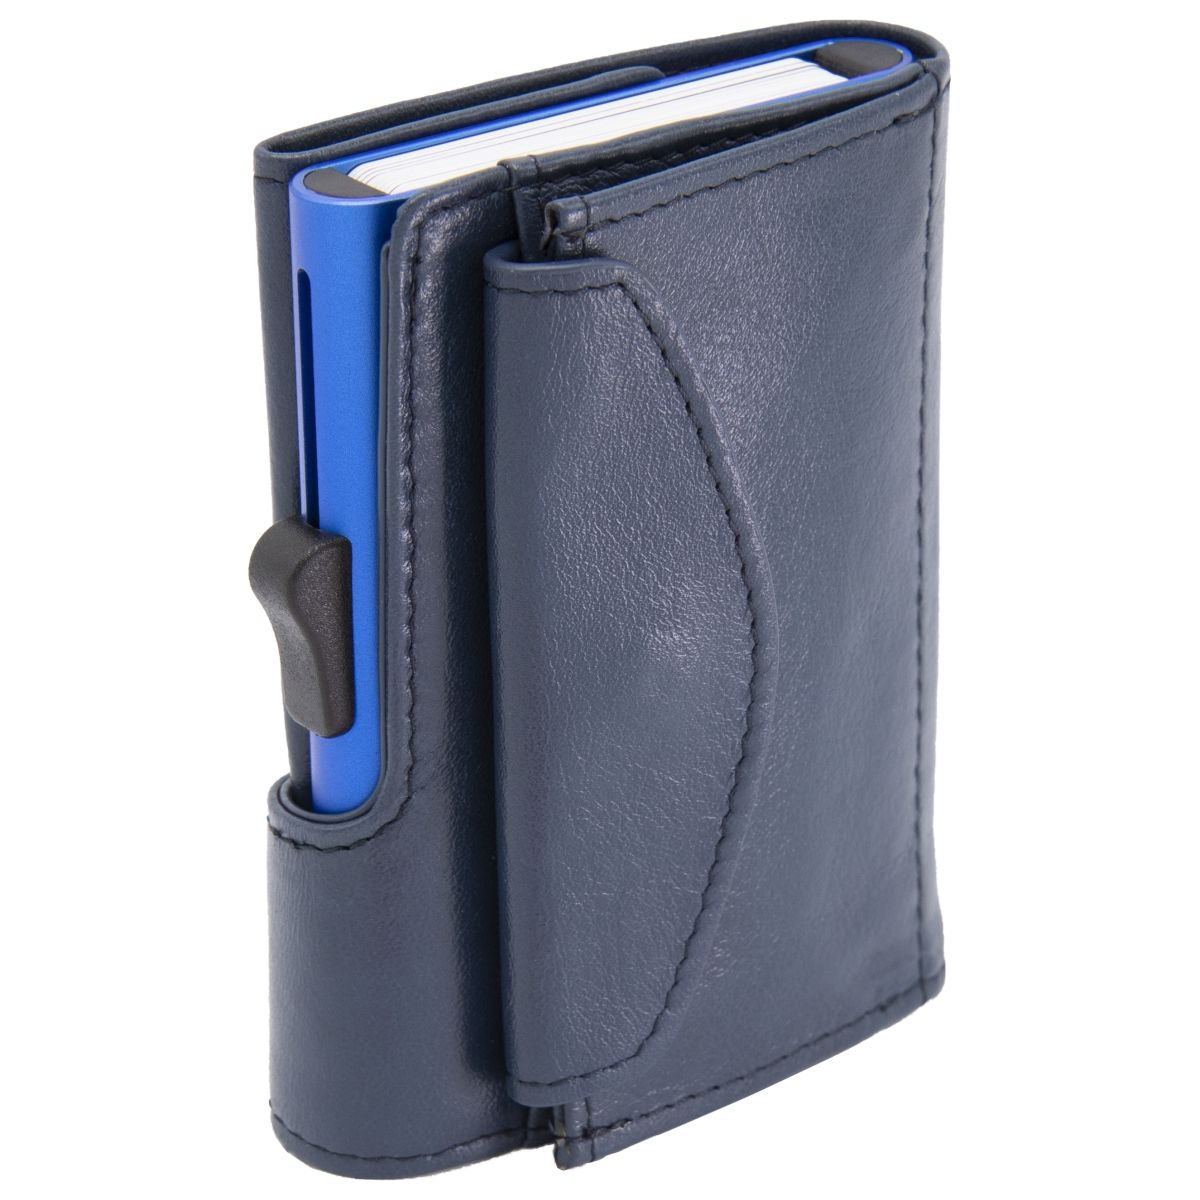 C-Secure XL Aluminum Wallet with Genuine Leather and Coins Pocket - Blue